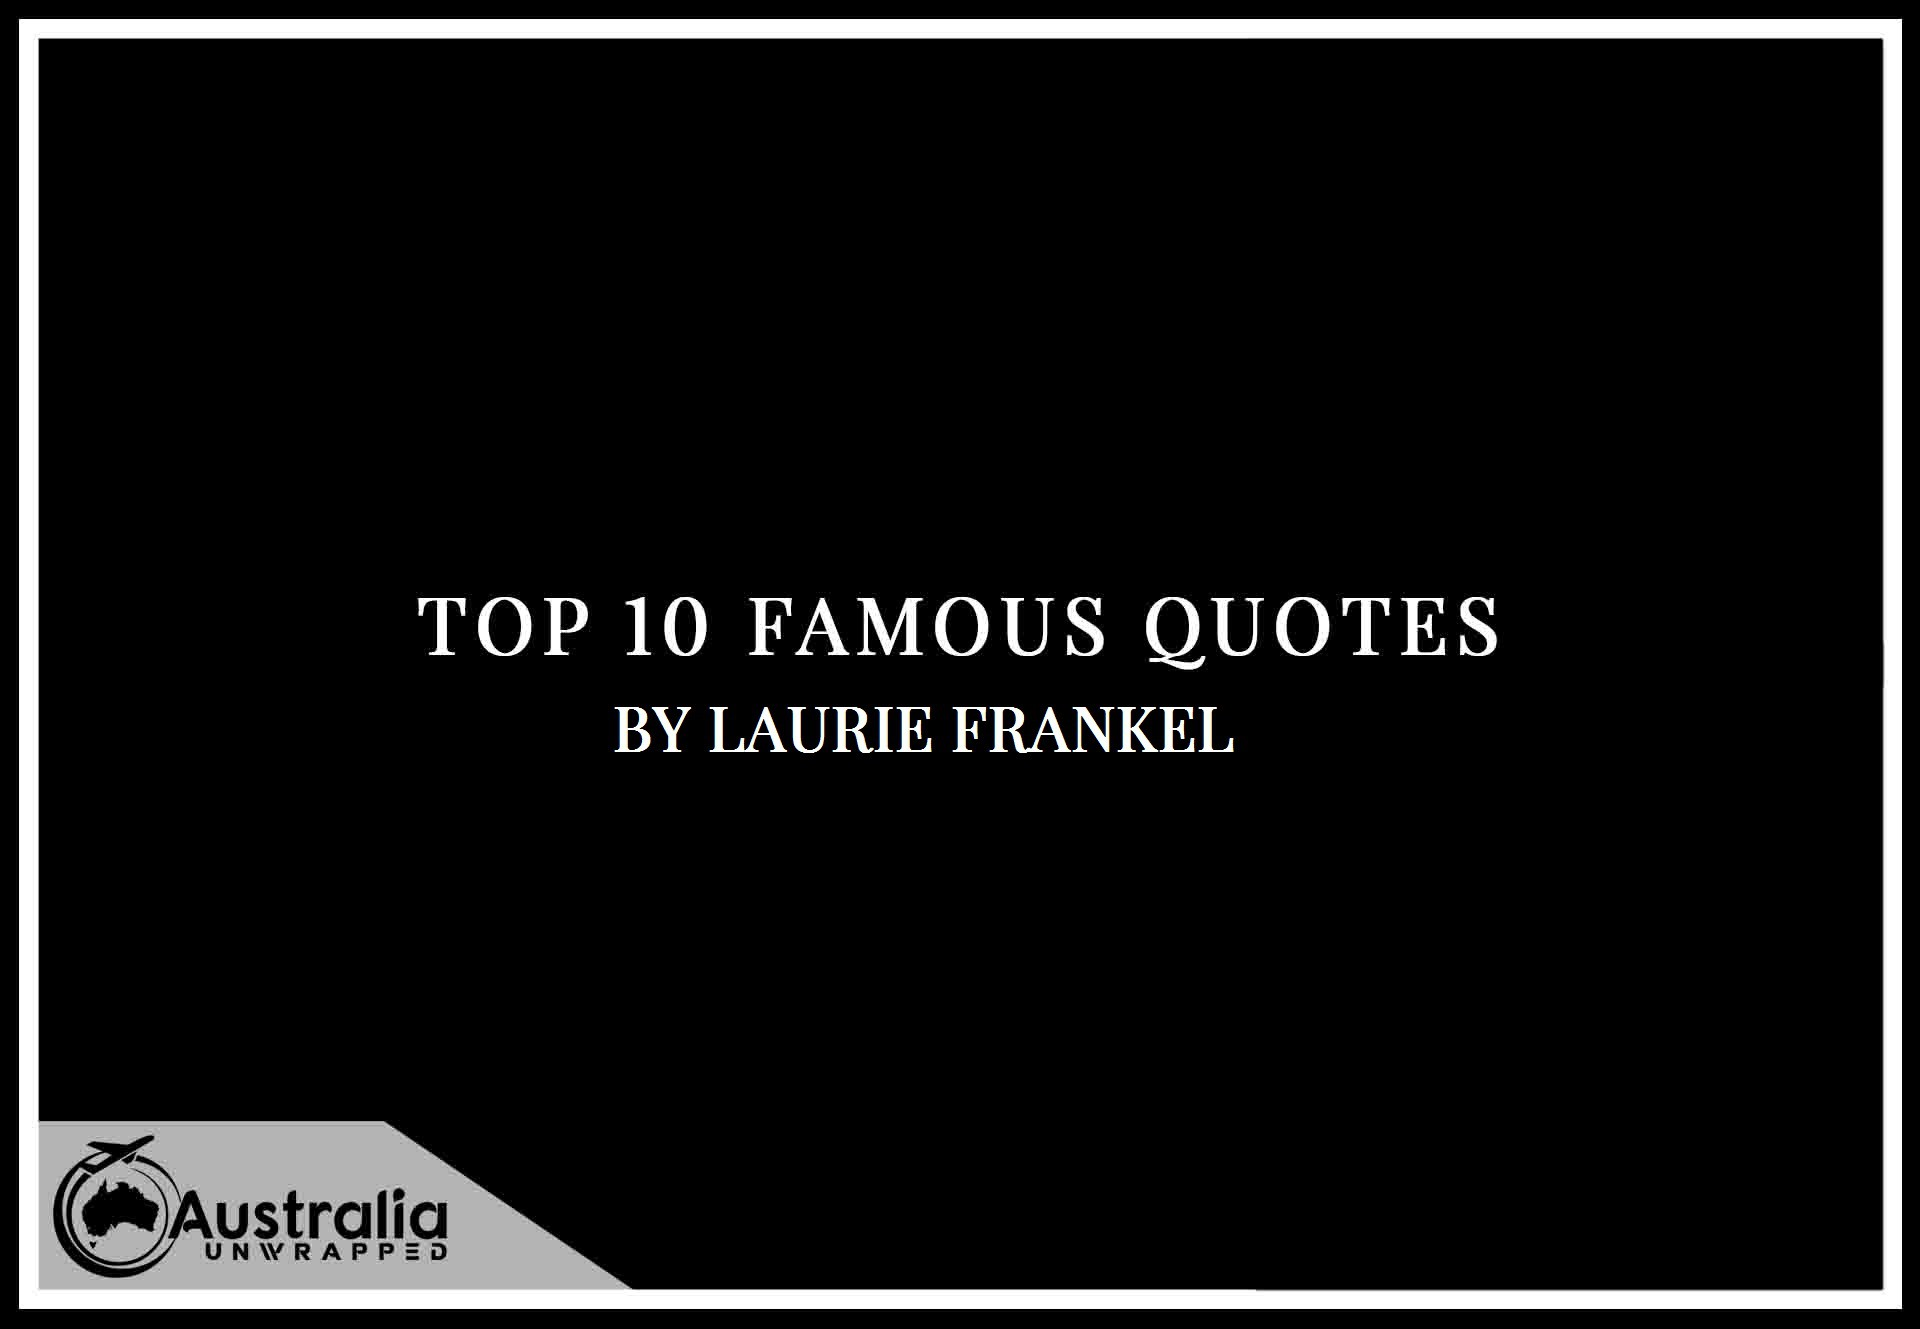 Laurie Frankel's Top 10 Popular and Famous Quotes